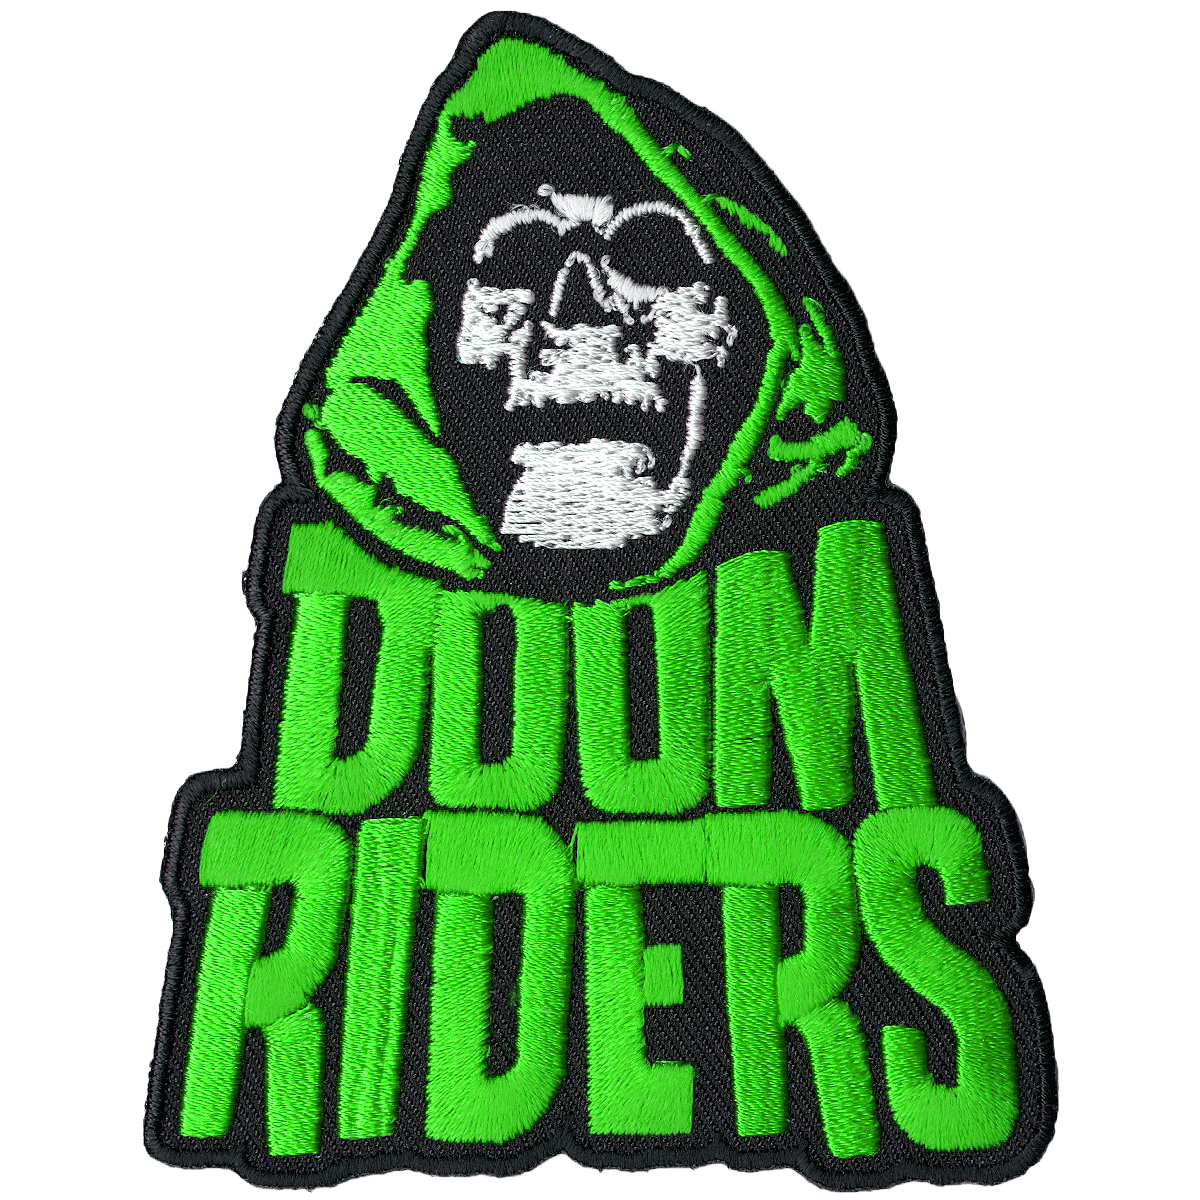 Transparent reaper greem. Doomriders green embroidered patch